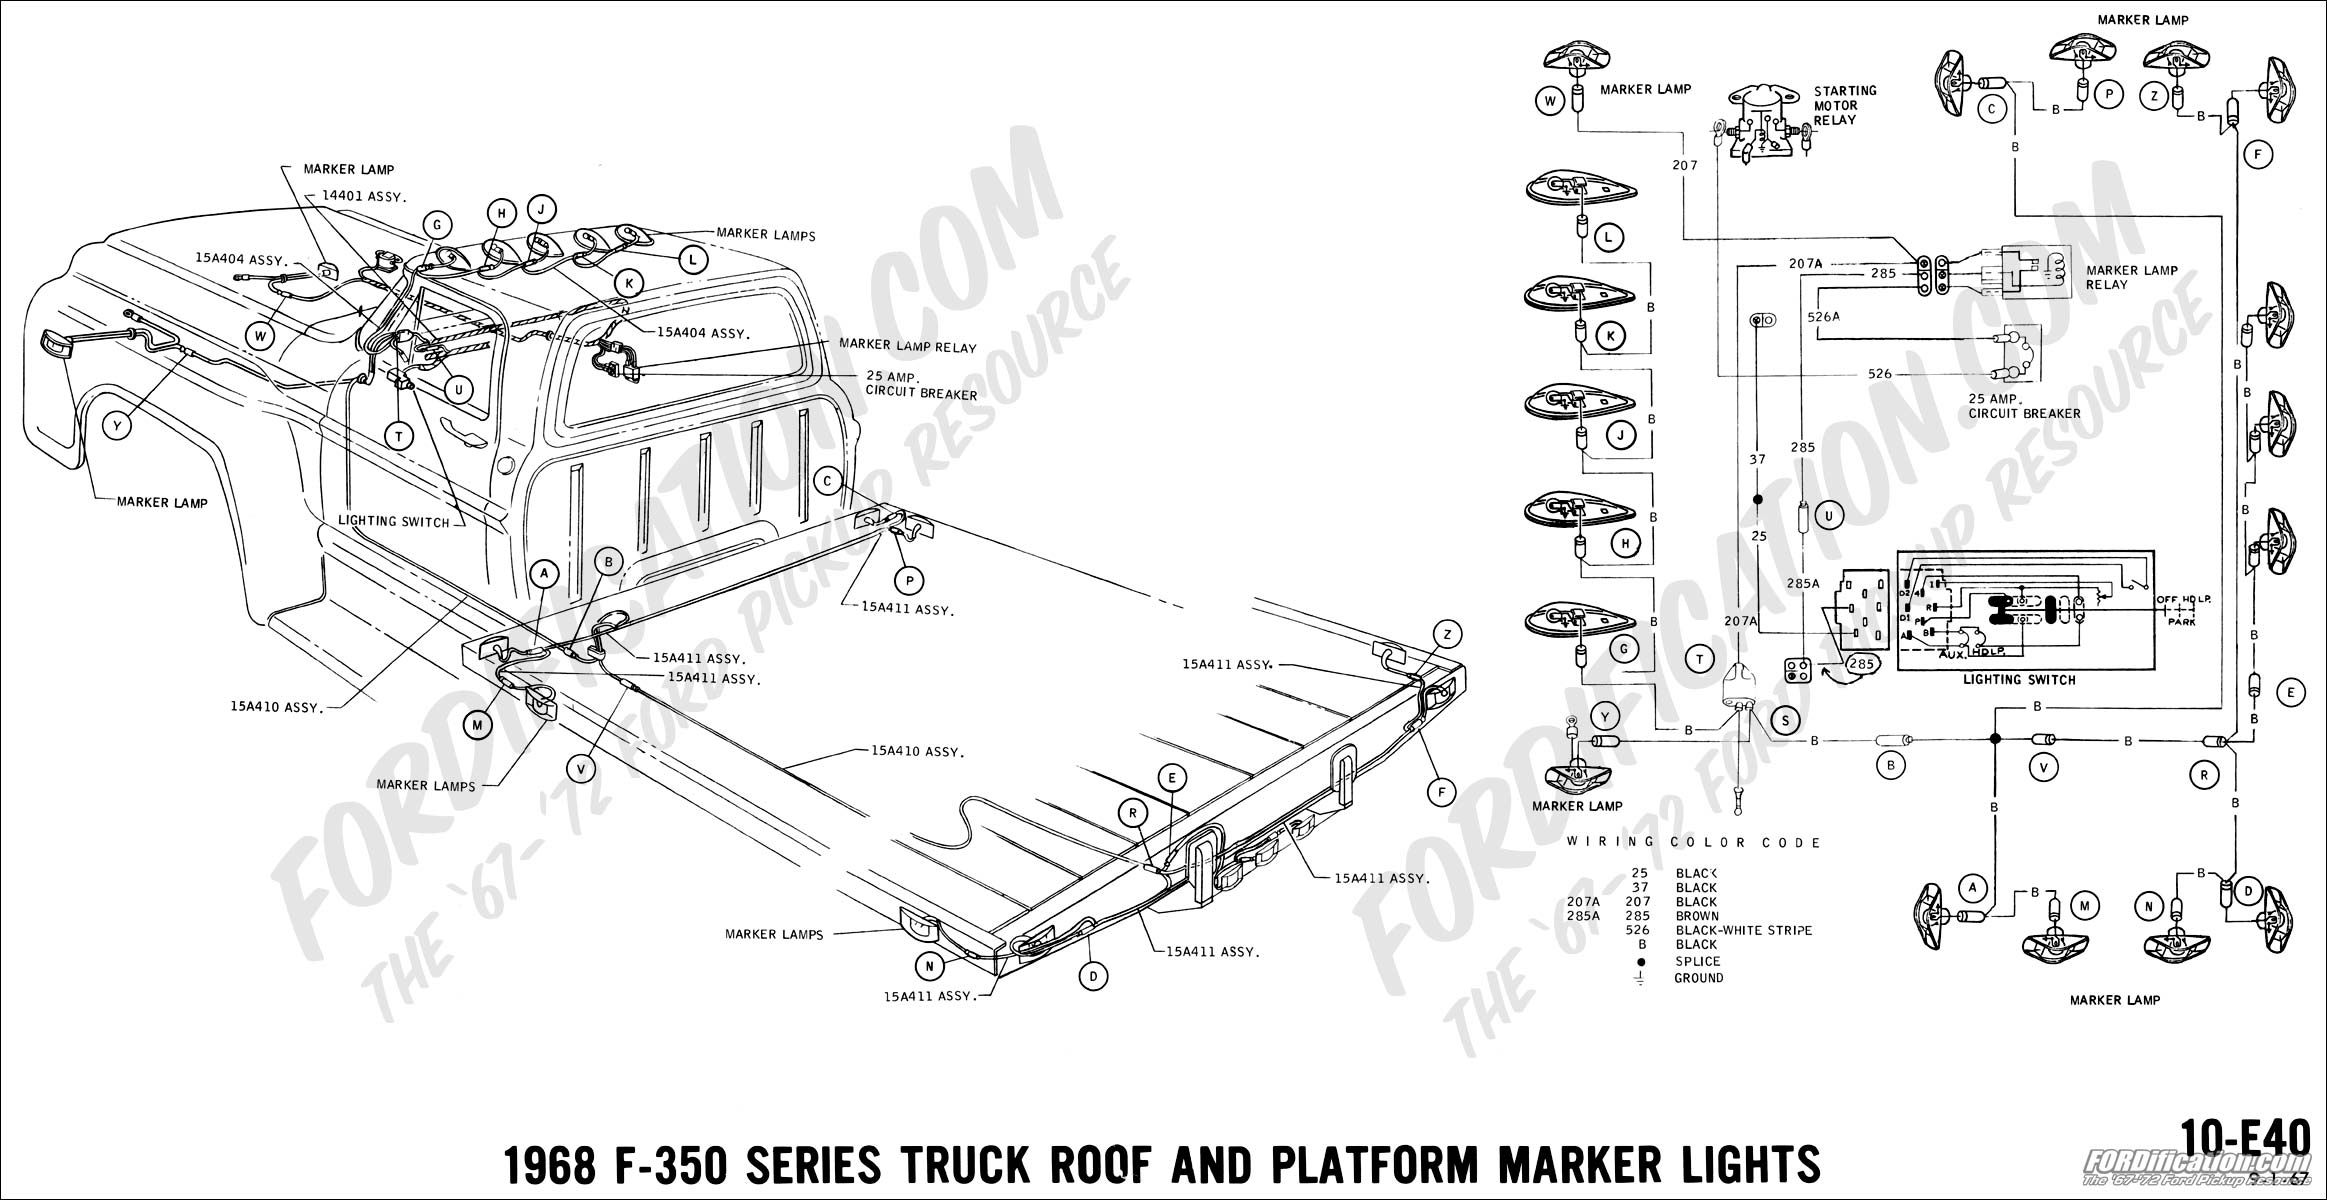 1427913 Brake Line Replacement furthermore 73 Dodge Wirin as well 3ca6h 97 F350 Need Wiring Diagram 7 3 Powerstroke Charging System additionally 686729 Wiring Aftermarket Head Unit 97 Es300 further RepairGuideContent. on dodge motorhome schematics